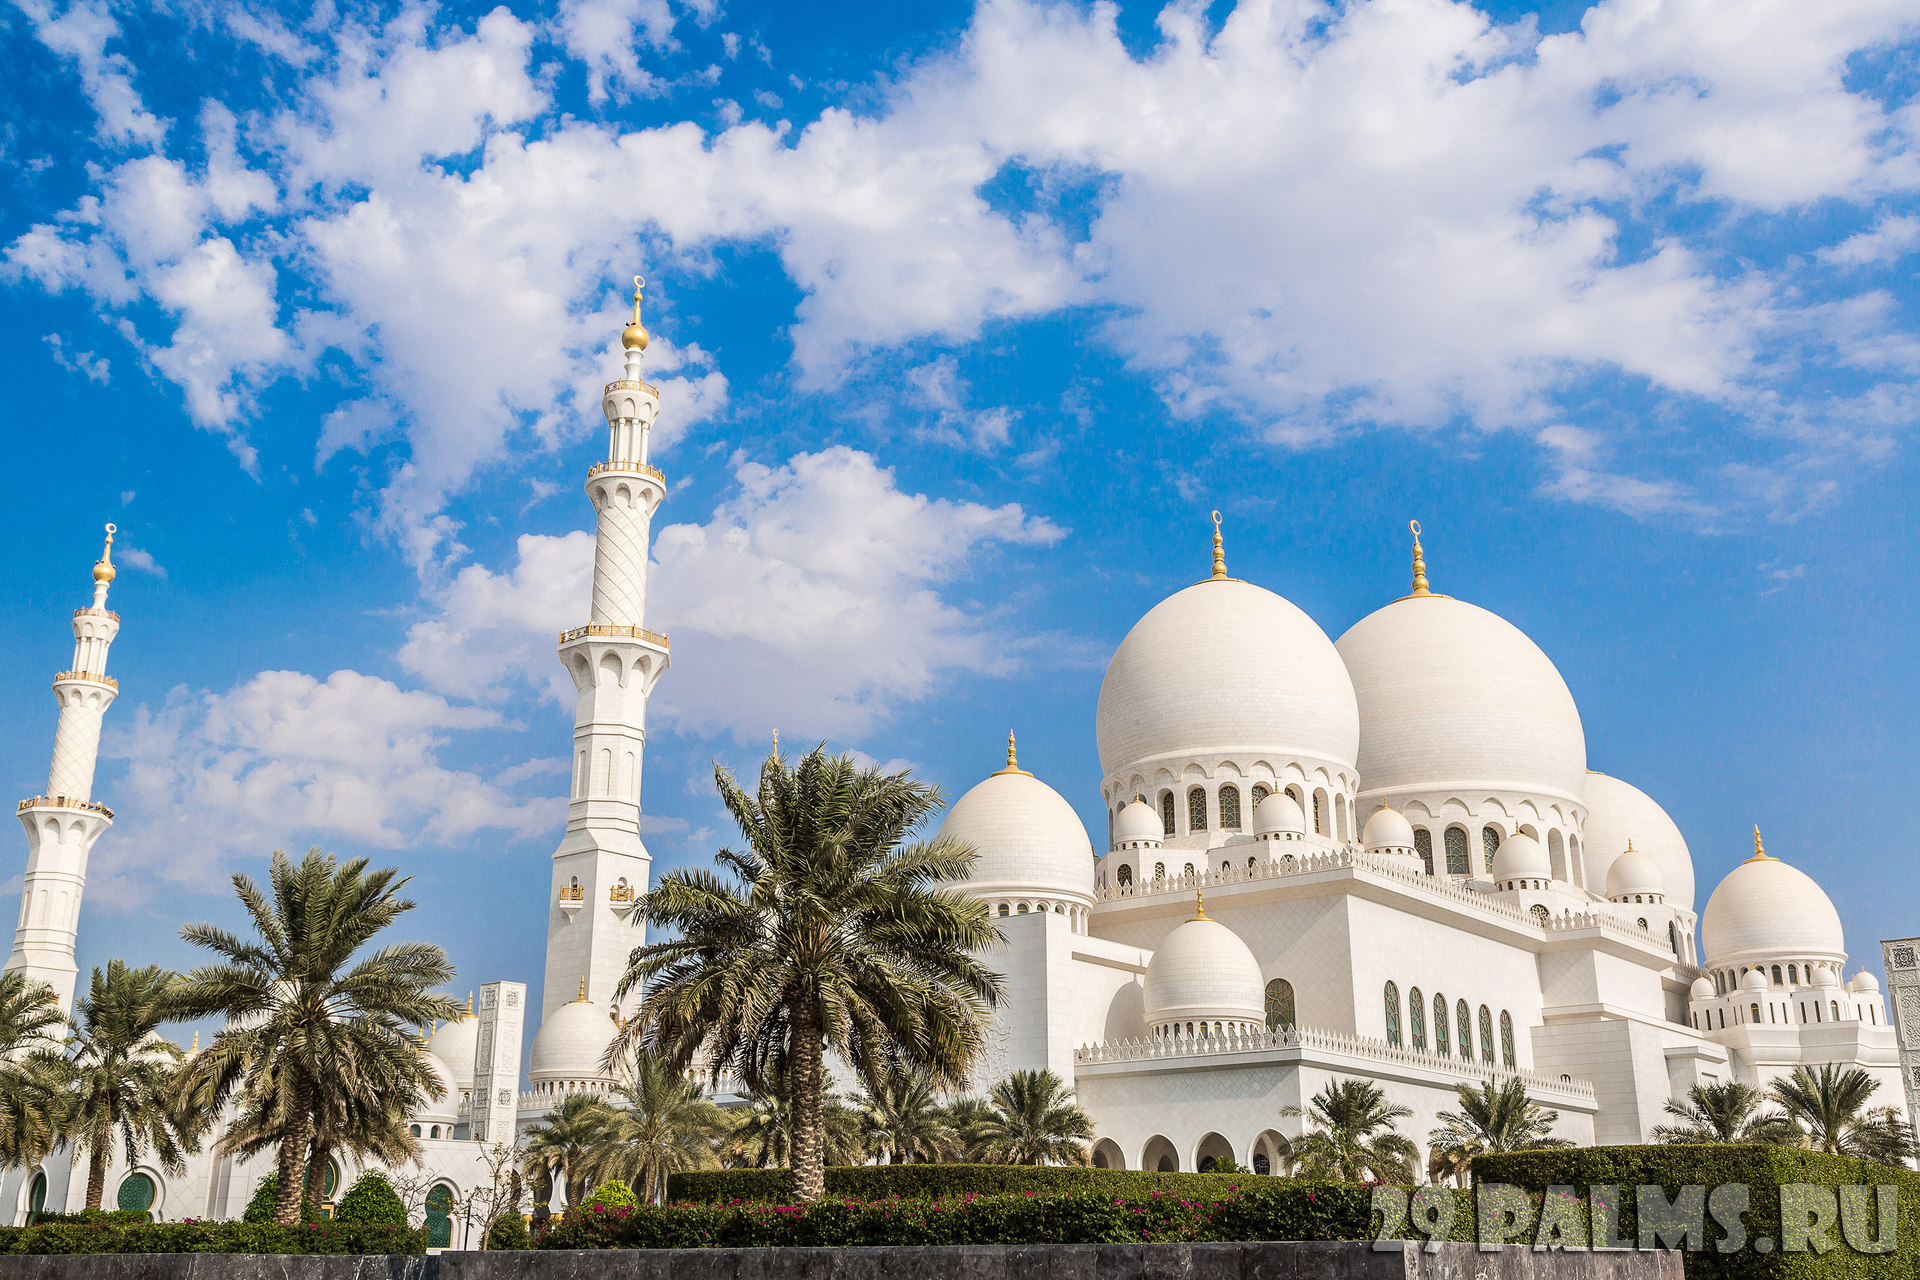 Клуб путешествий Павла Аксенова. ОАЭ. Абу-Даби. Мечеть шейха Зайда. Sheikh Zayed Mosque. Фото bloodua - Depositphotos